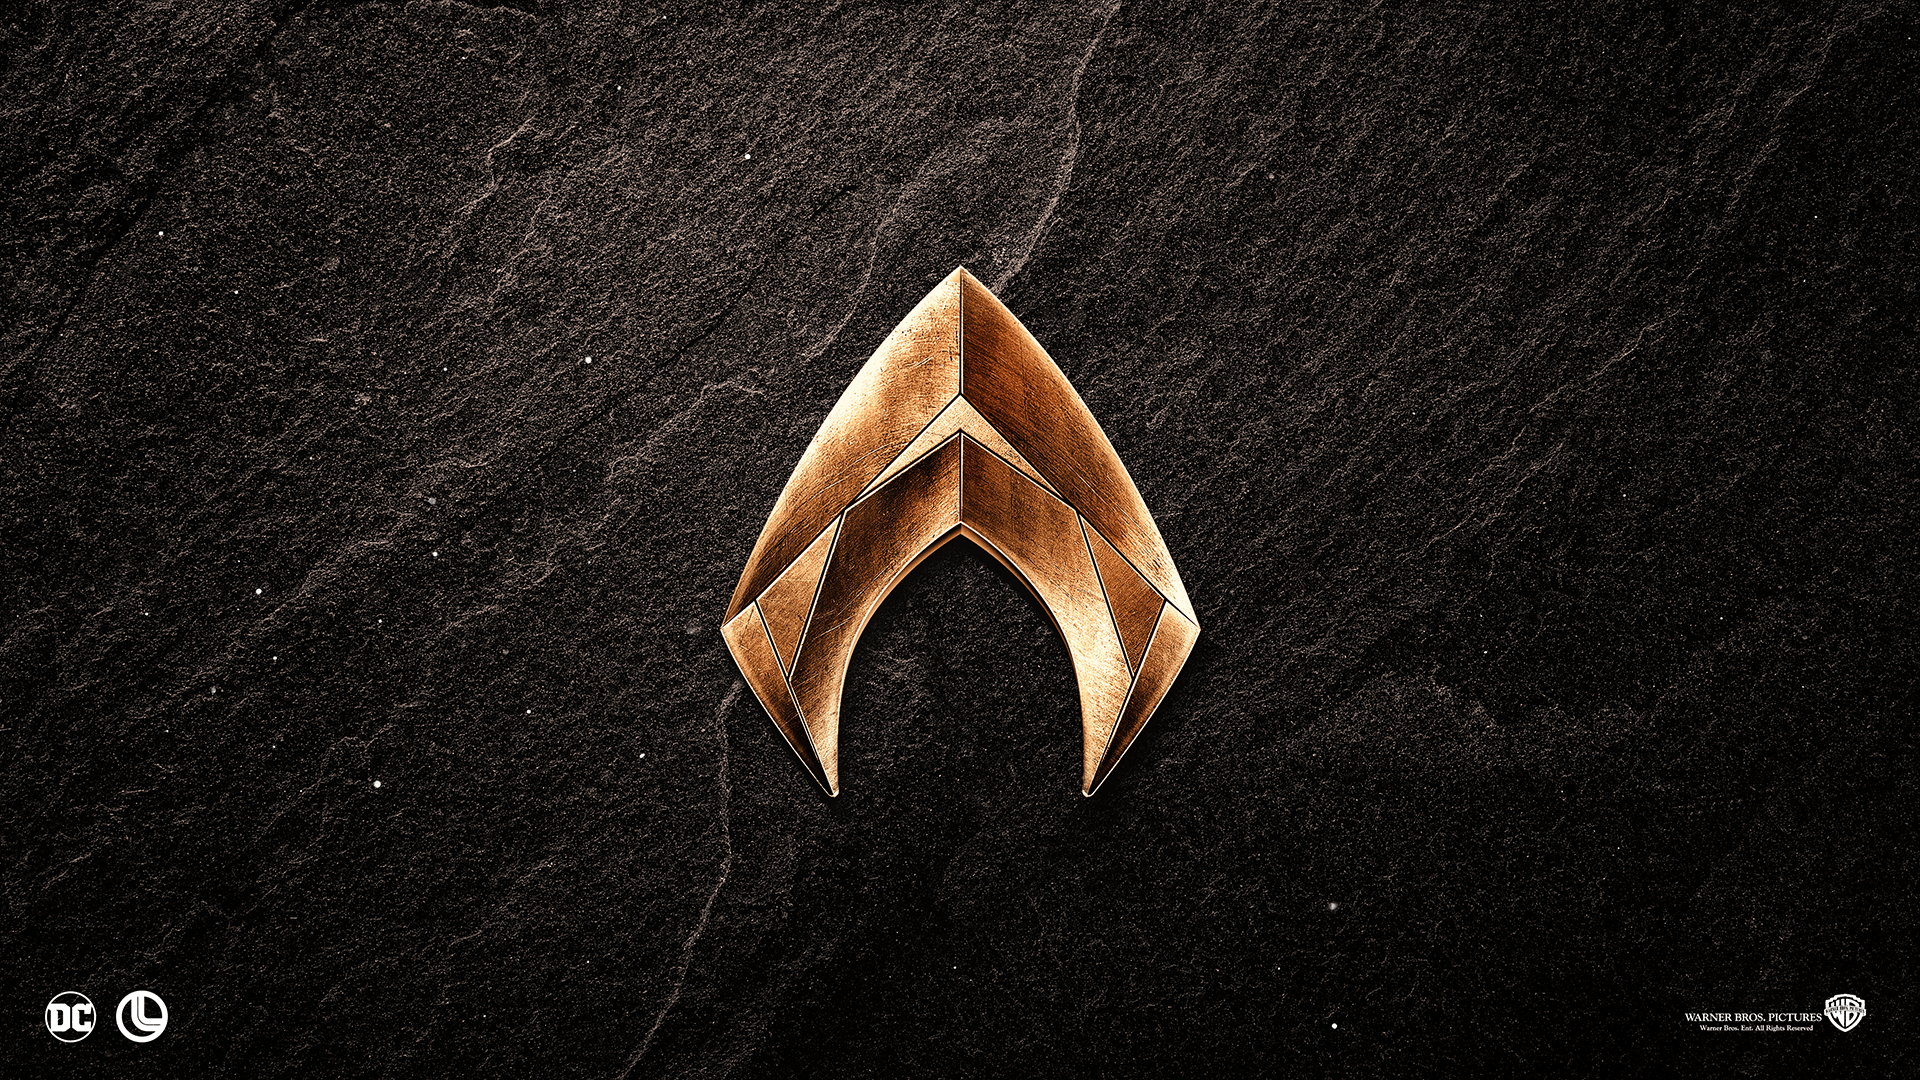 Aquaman Full HD Wallpapers and Backgrounds Image